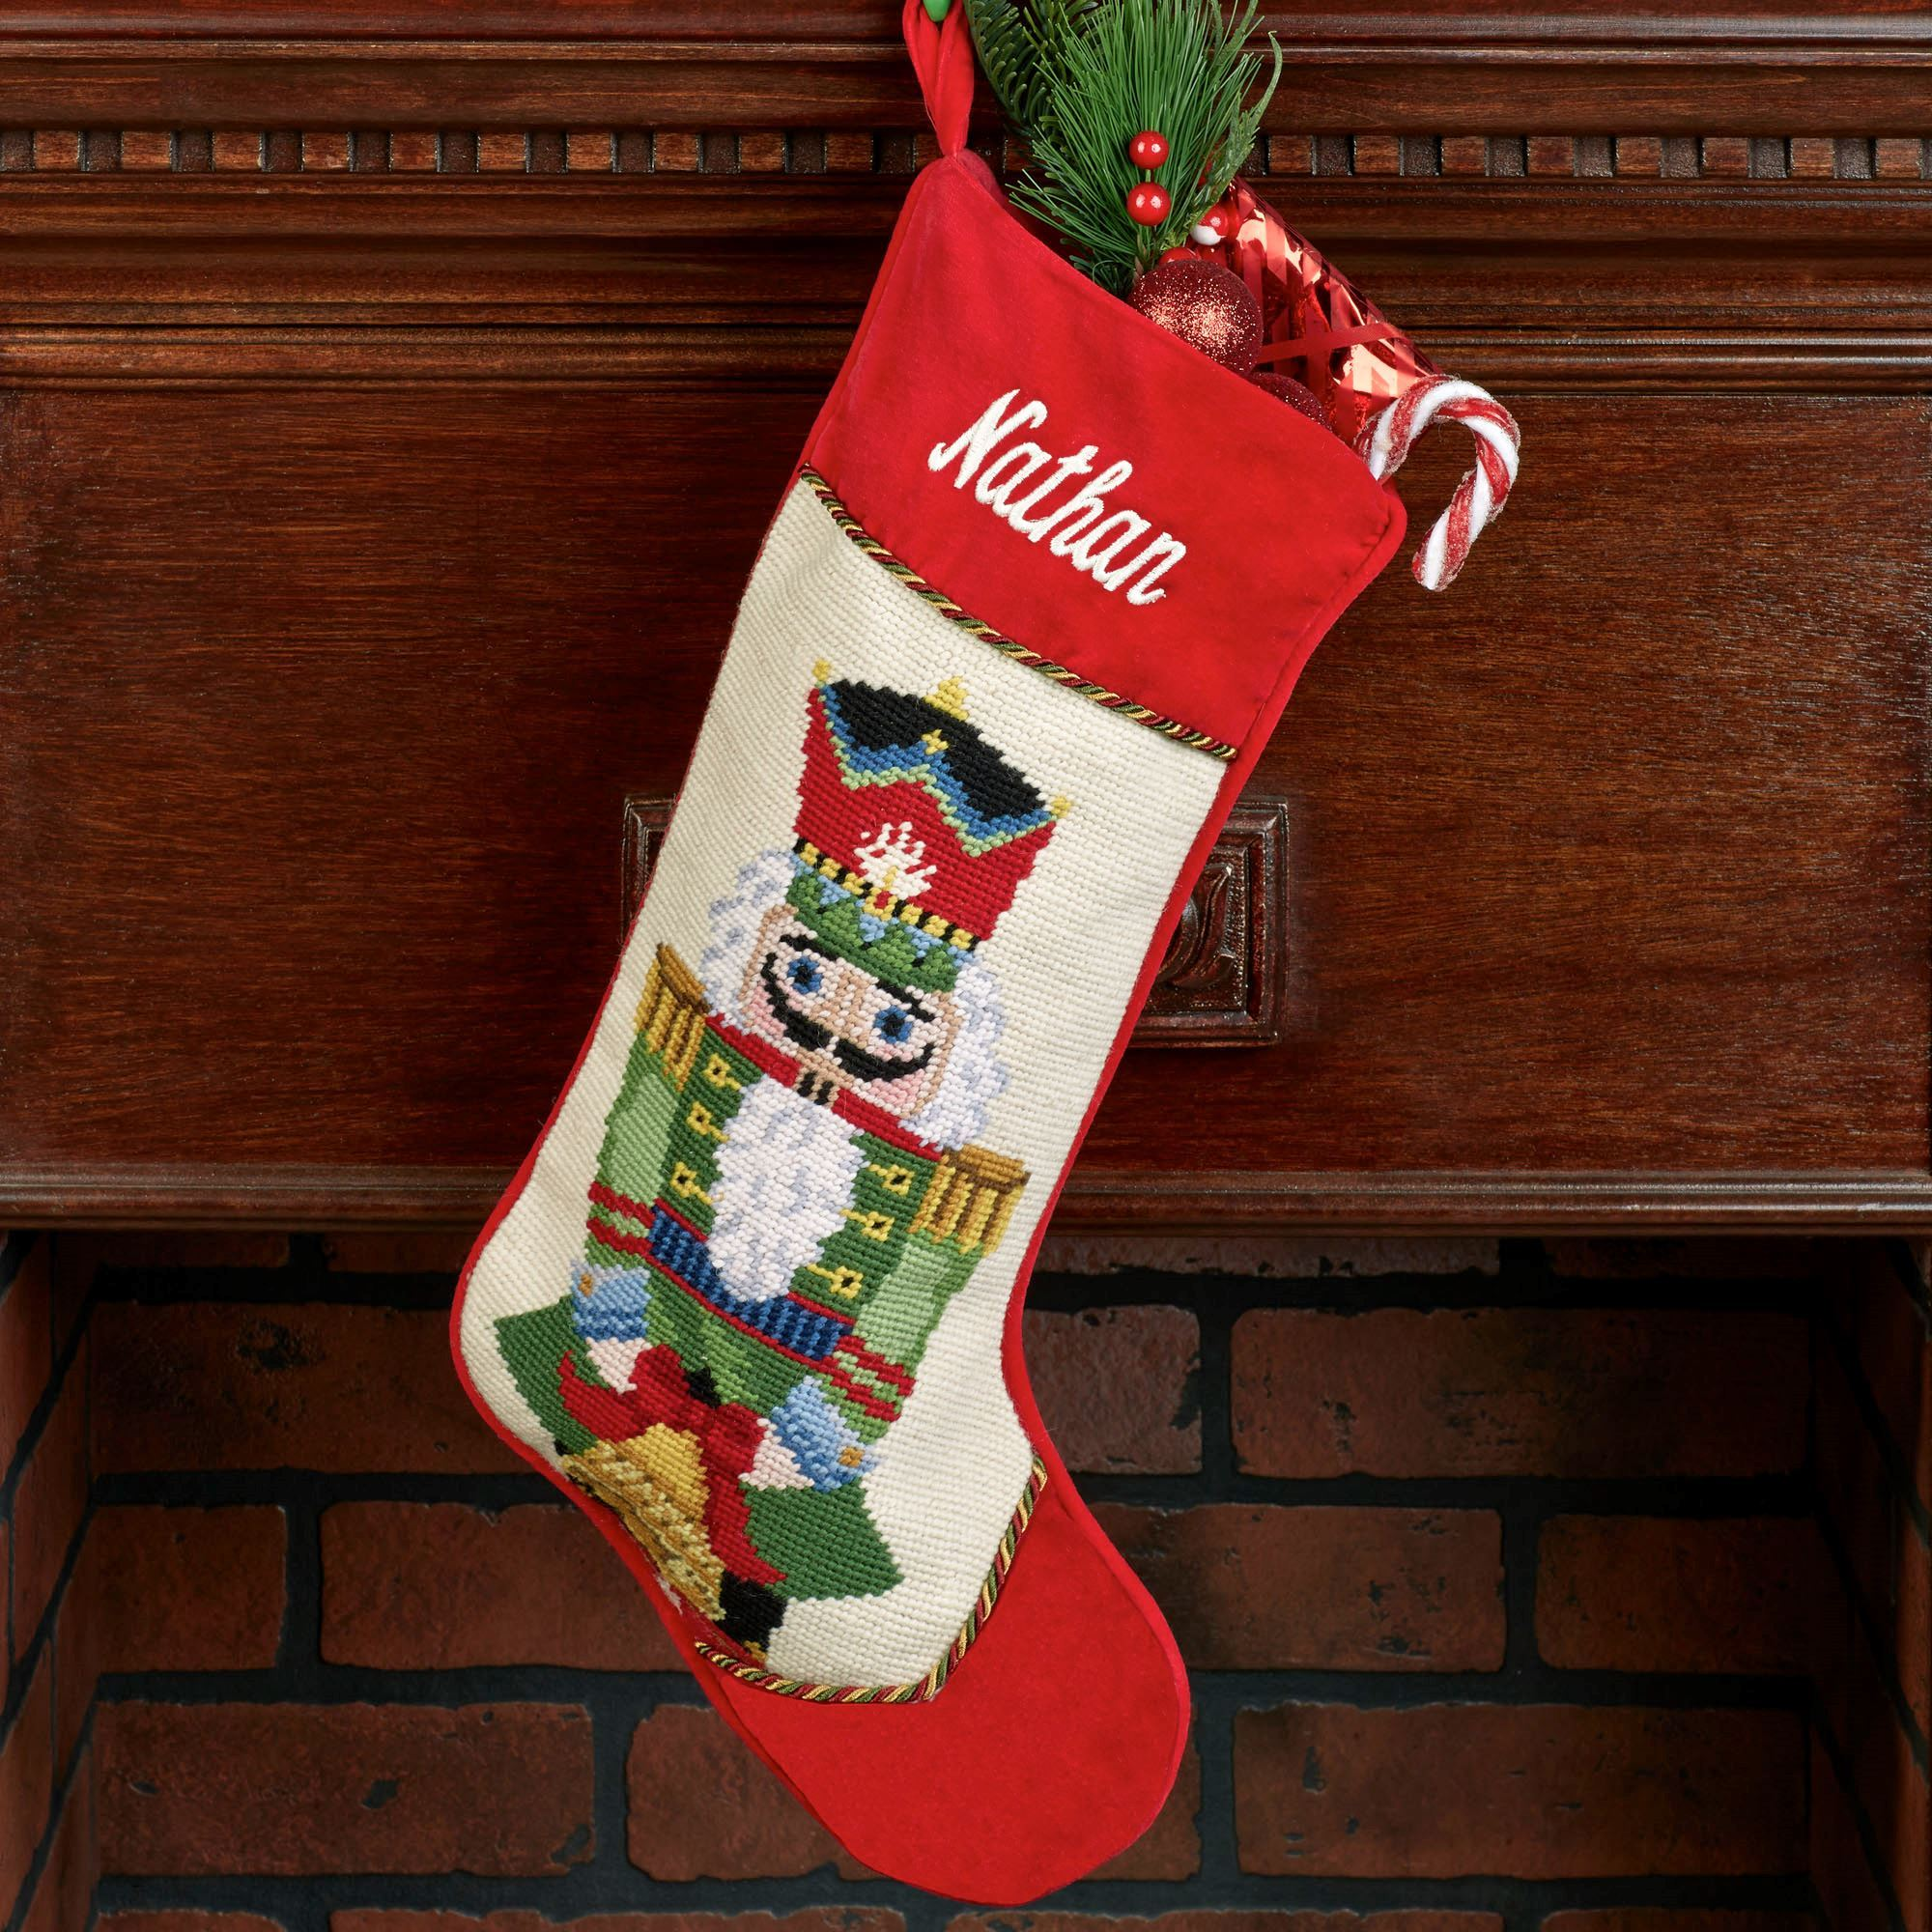 Alluring Needlepoint Stockings for Home Accecories Ideas: Charming Needlepoint Stockings And Fireplace With Mantle Shelves In The Christmas Day